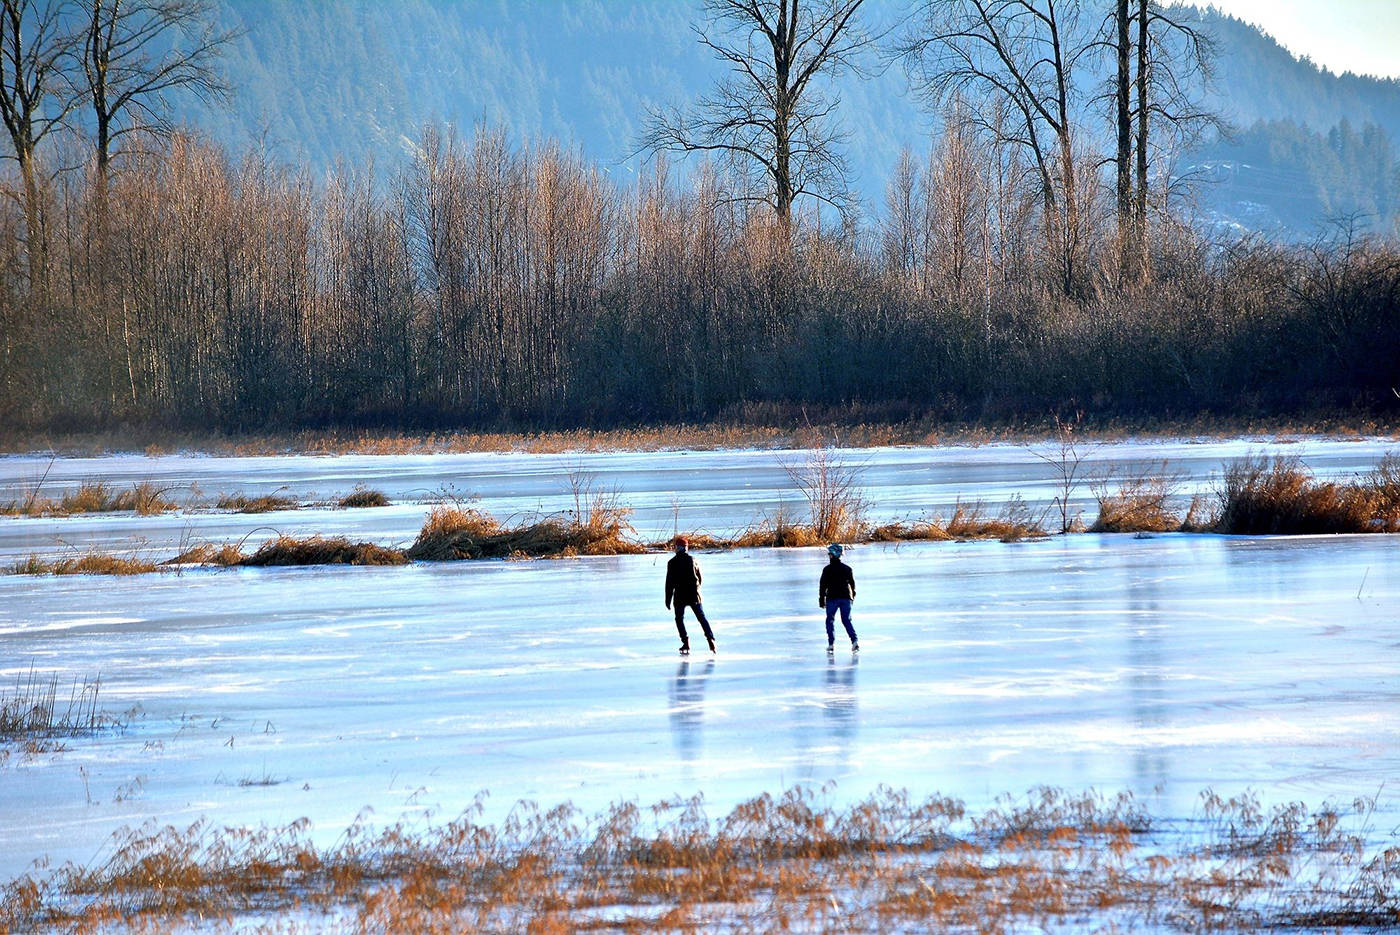 Pitt Lake is an accessible hike for the whole family, and a great place to spot wildlife! (Photo: Liz Boulton)